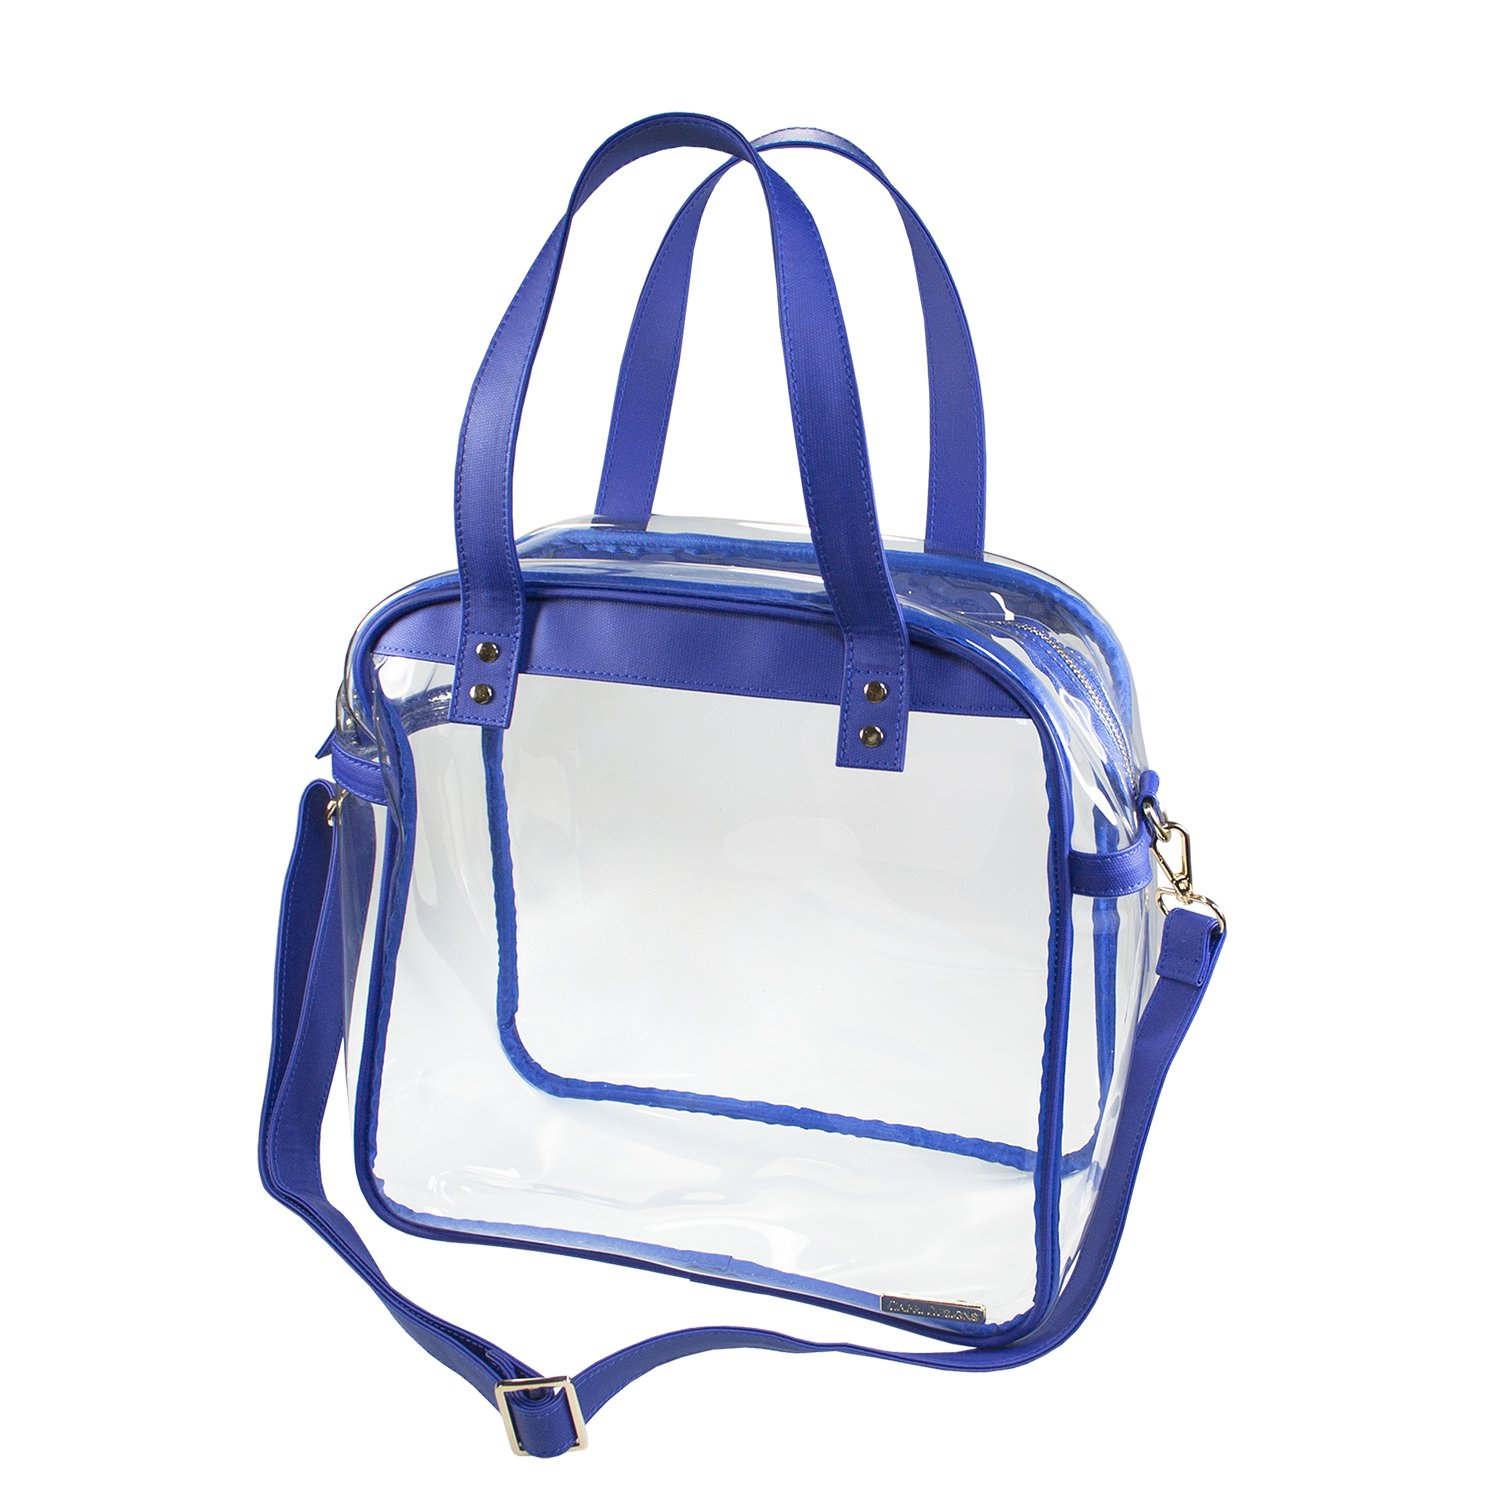 Capri Designs Stadium Approved Cotton Canvas Clear Carryall Tote Bag Royal Blue